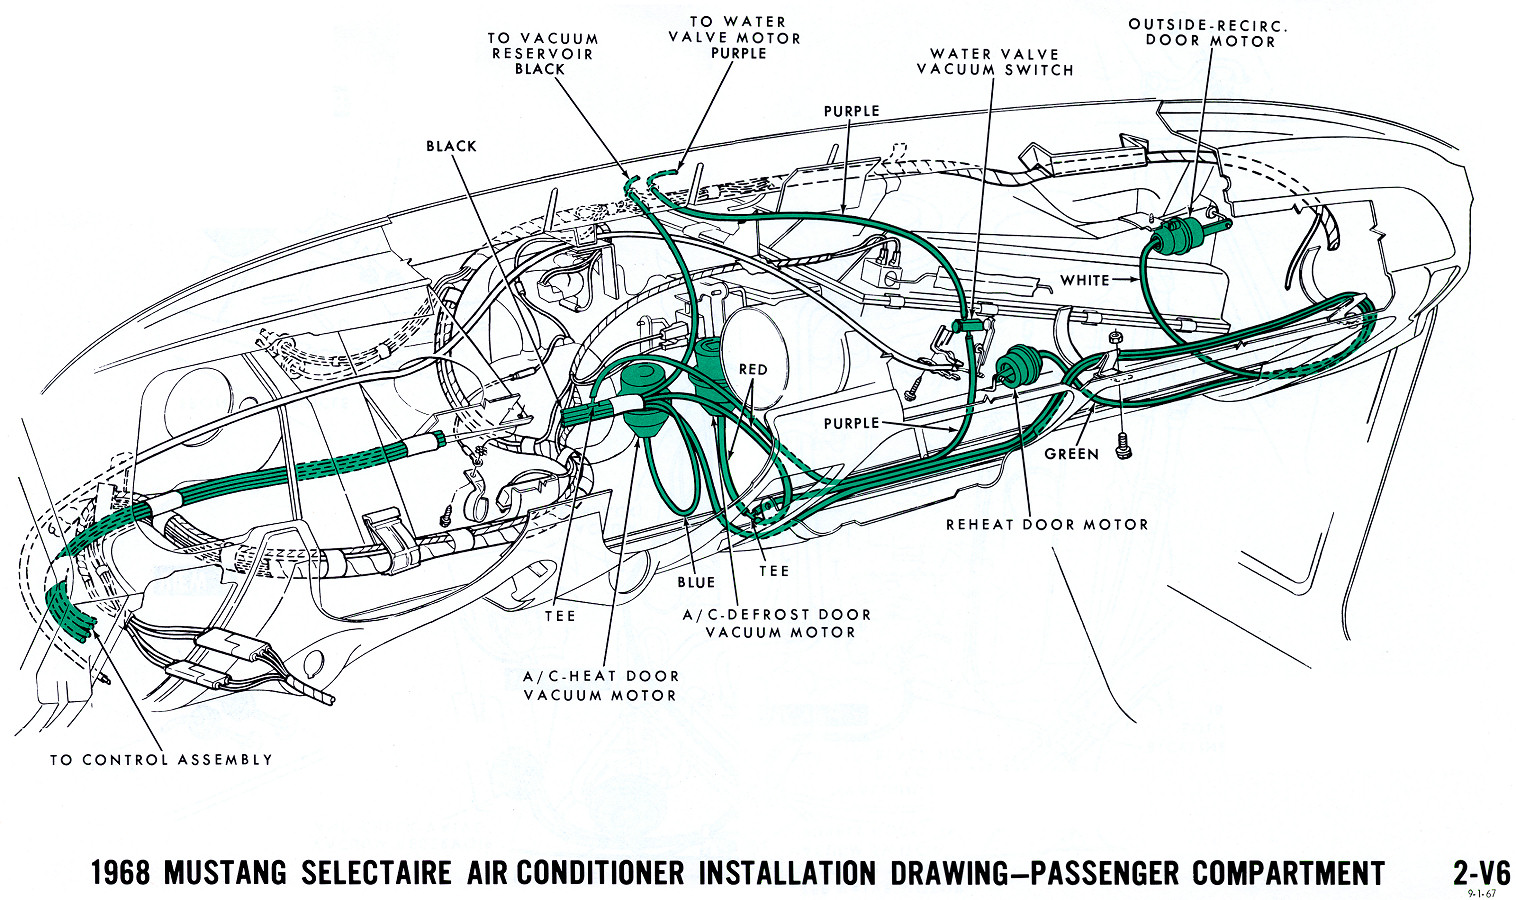 1968 Mustang Wiring Diagrams And Vacuum Schematics Average Joe Diagram For Air Conditioning Interior